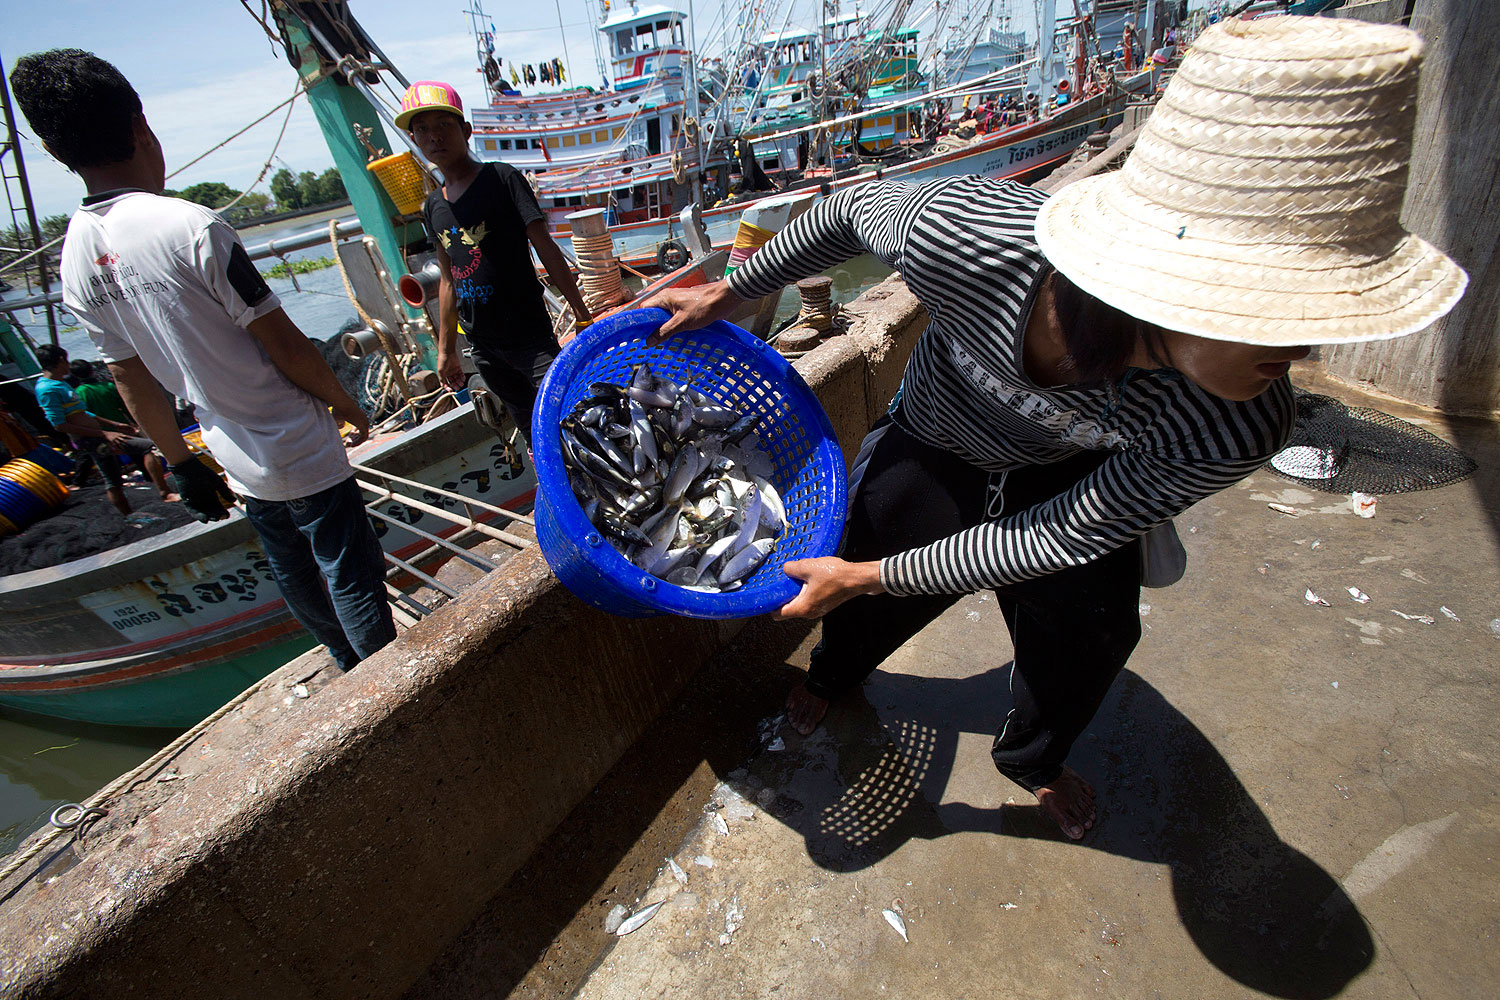 Workers from Burma land fish after a trip to the Gulf of Thailand